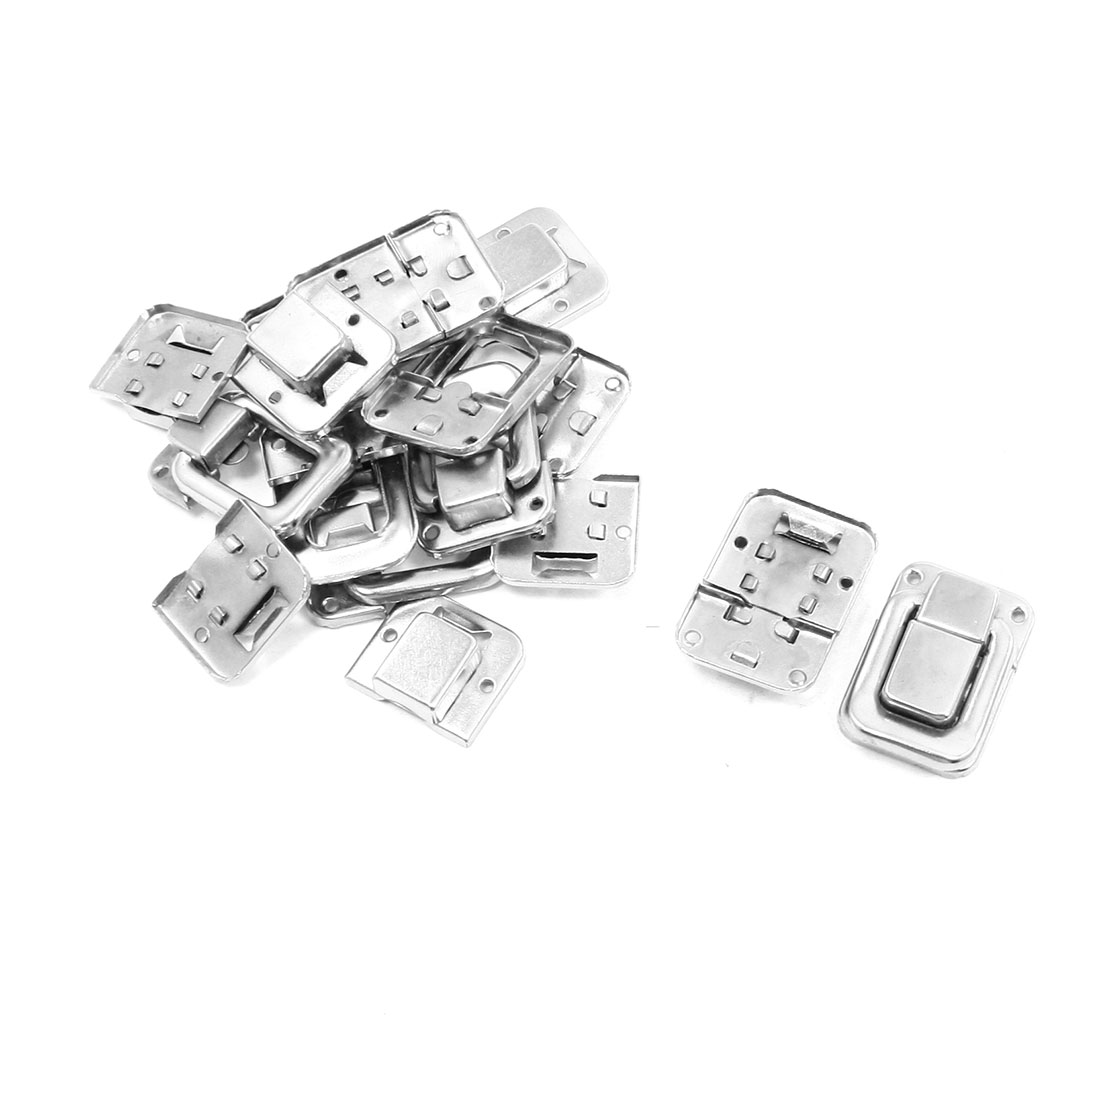 "10 Pcs 1.4"" Silver Tone Stainless Steel Toggle Latch Catches for Suitcase"